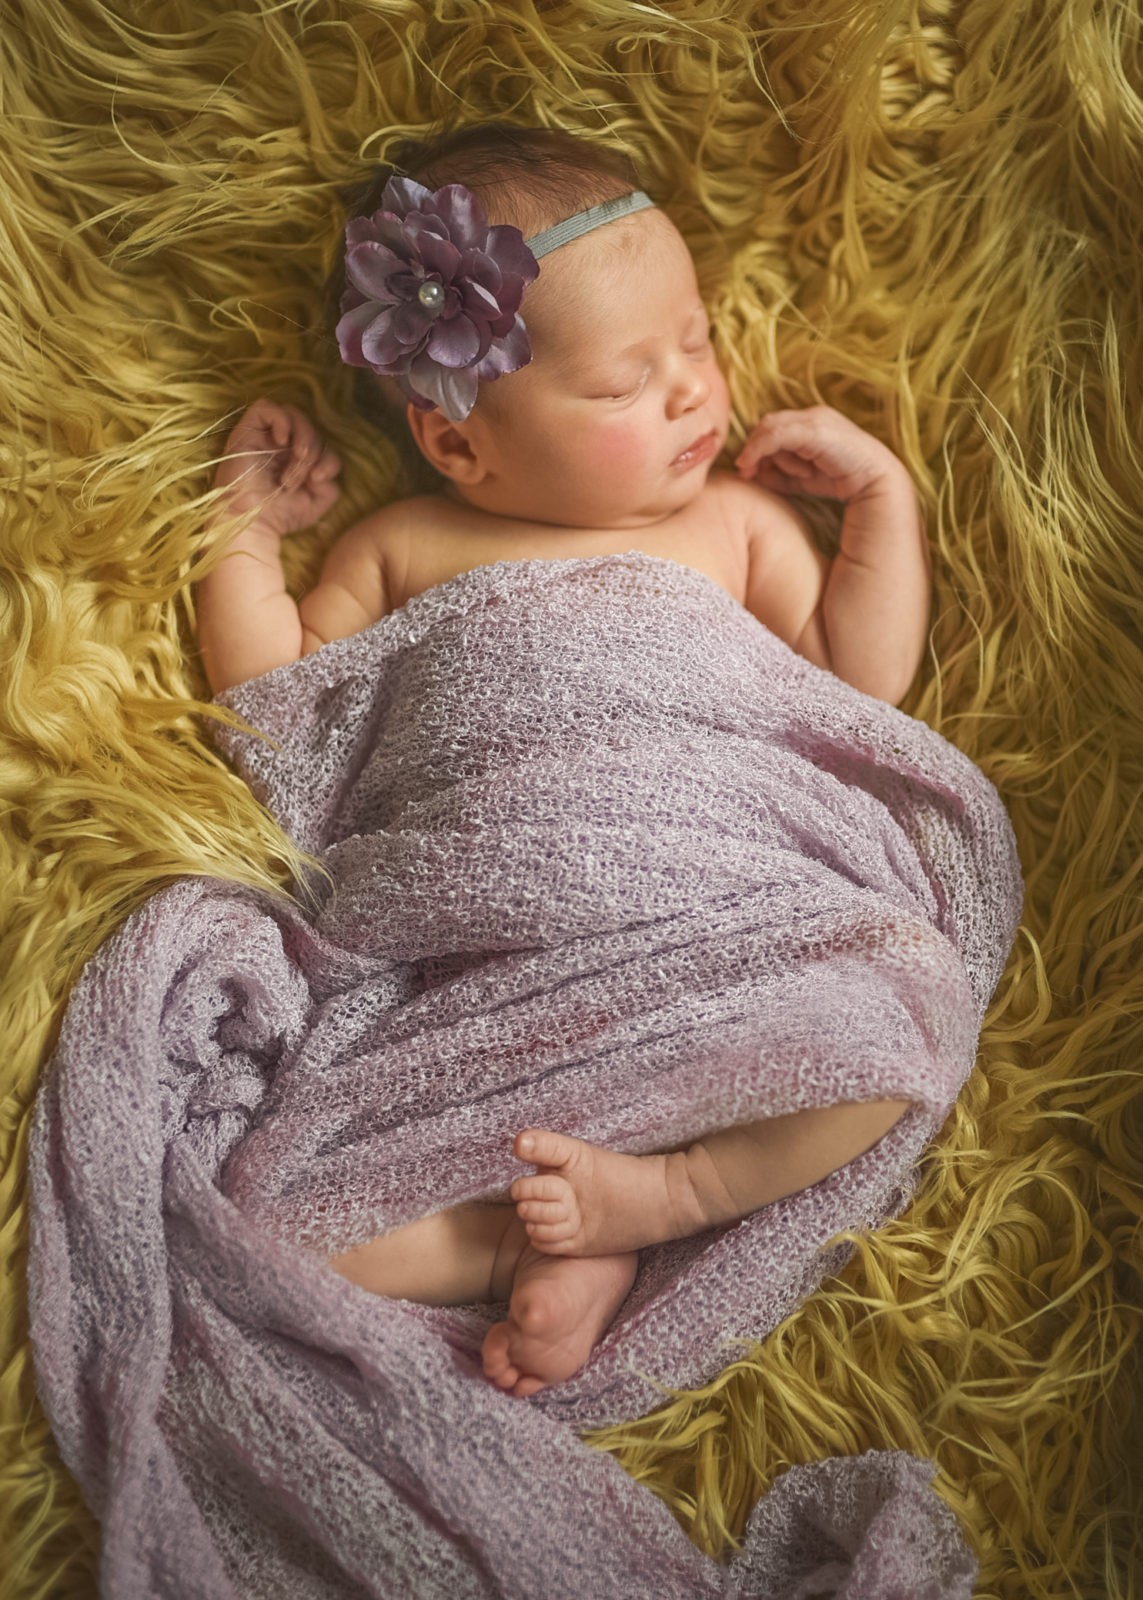 Newborn baby girl sleeps peacefully while laying on a furry blanket and soft swaddle during a photo session with Artshaped photography in Westwood, Los Angeles, Califronia.